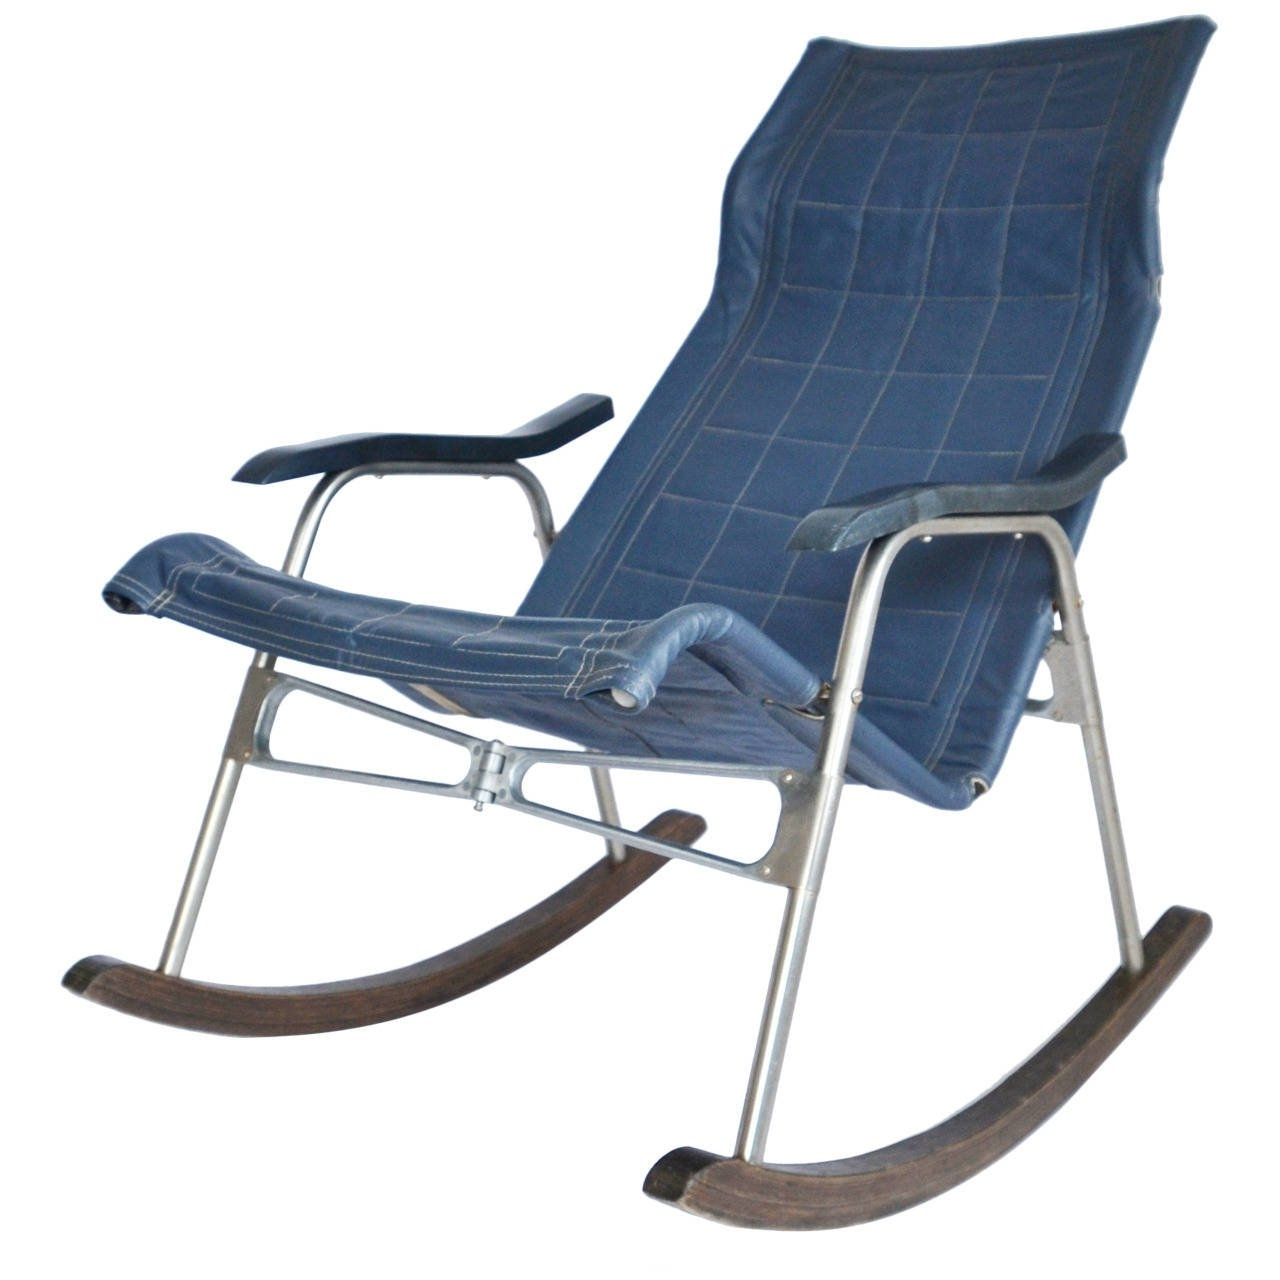 Folding Rocking Chairtakeshi Nii, Japan, 1950s For Sale At 1stdibs Intended For 2018 Folding Rocking Chairs (View 5 of 20)